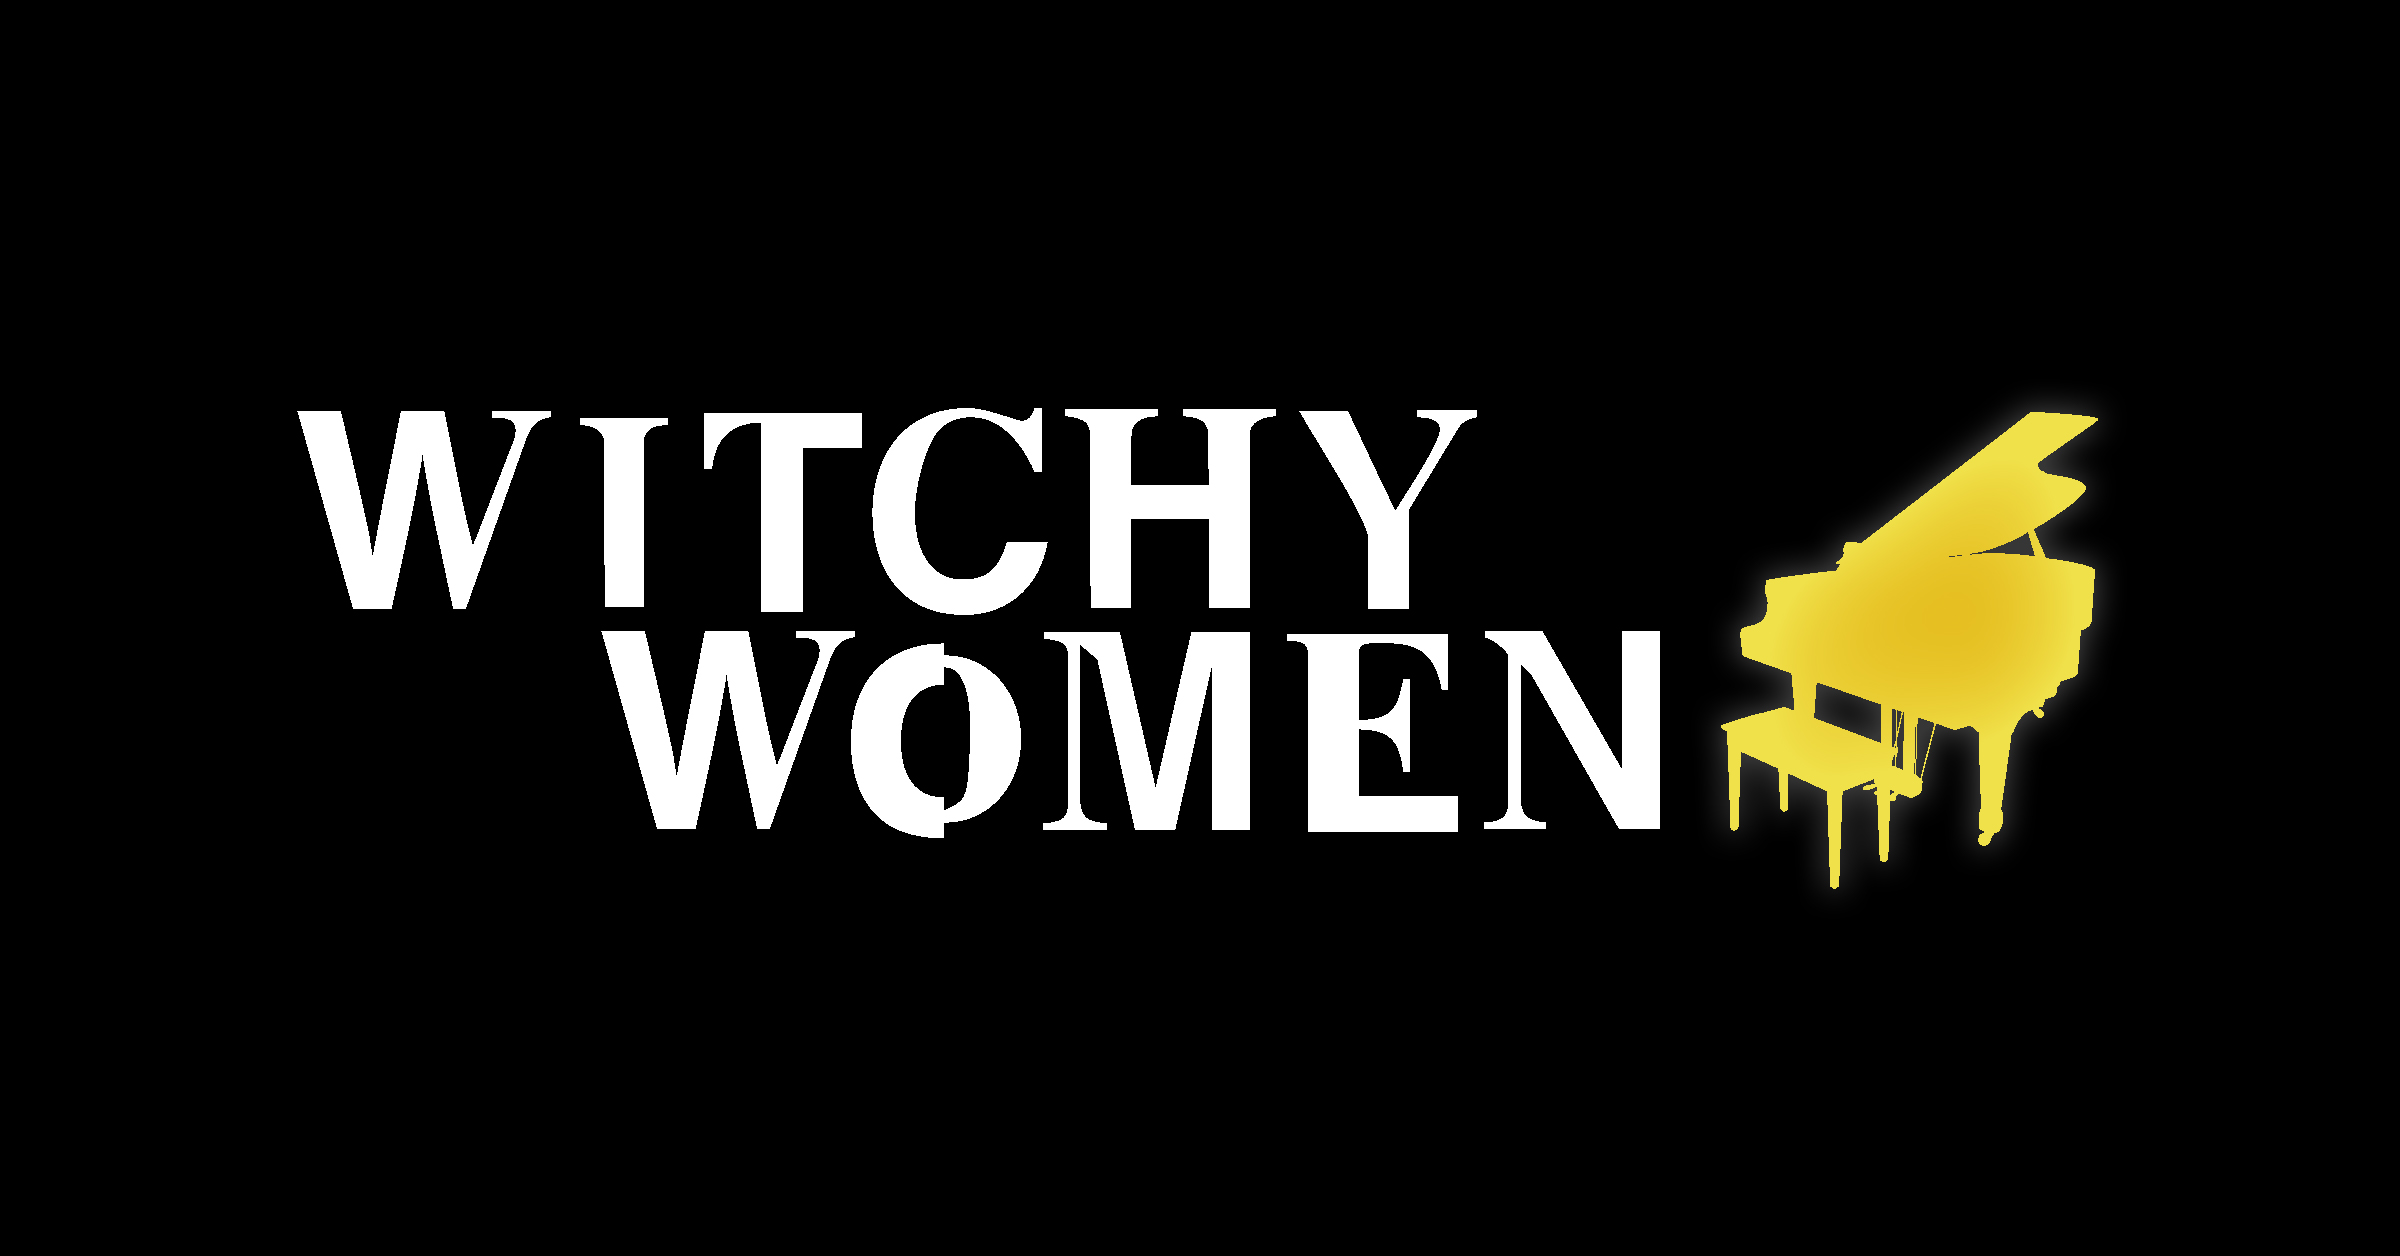 Witchy Women logo (new 4 facebook).jpg